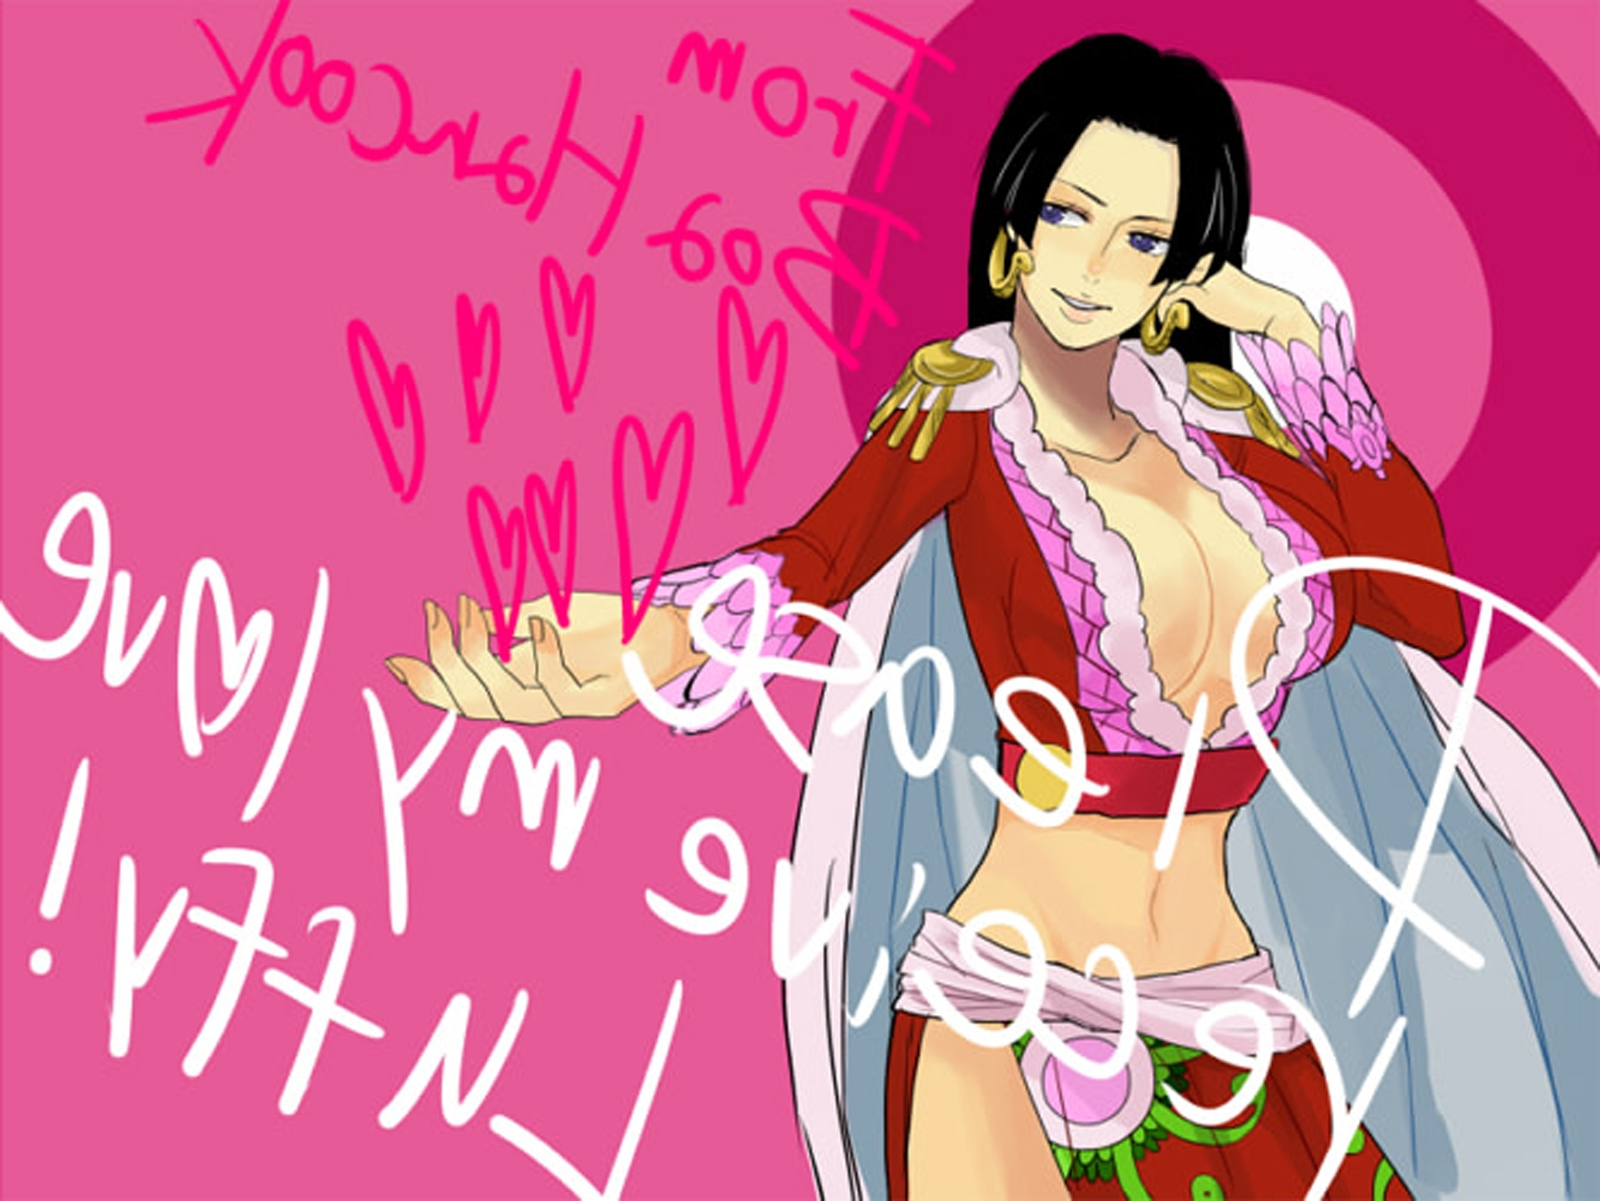 Toon sex pic ##00013061773 female black hair boa hancock breasts cape cleavage earrings female heart highres long hair long skirt midriff monkey d luffy navel one piece purple eyess red jacket side slit skirt solo standing text valentine